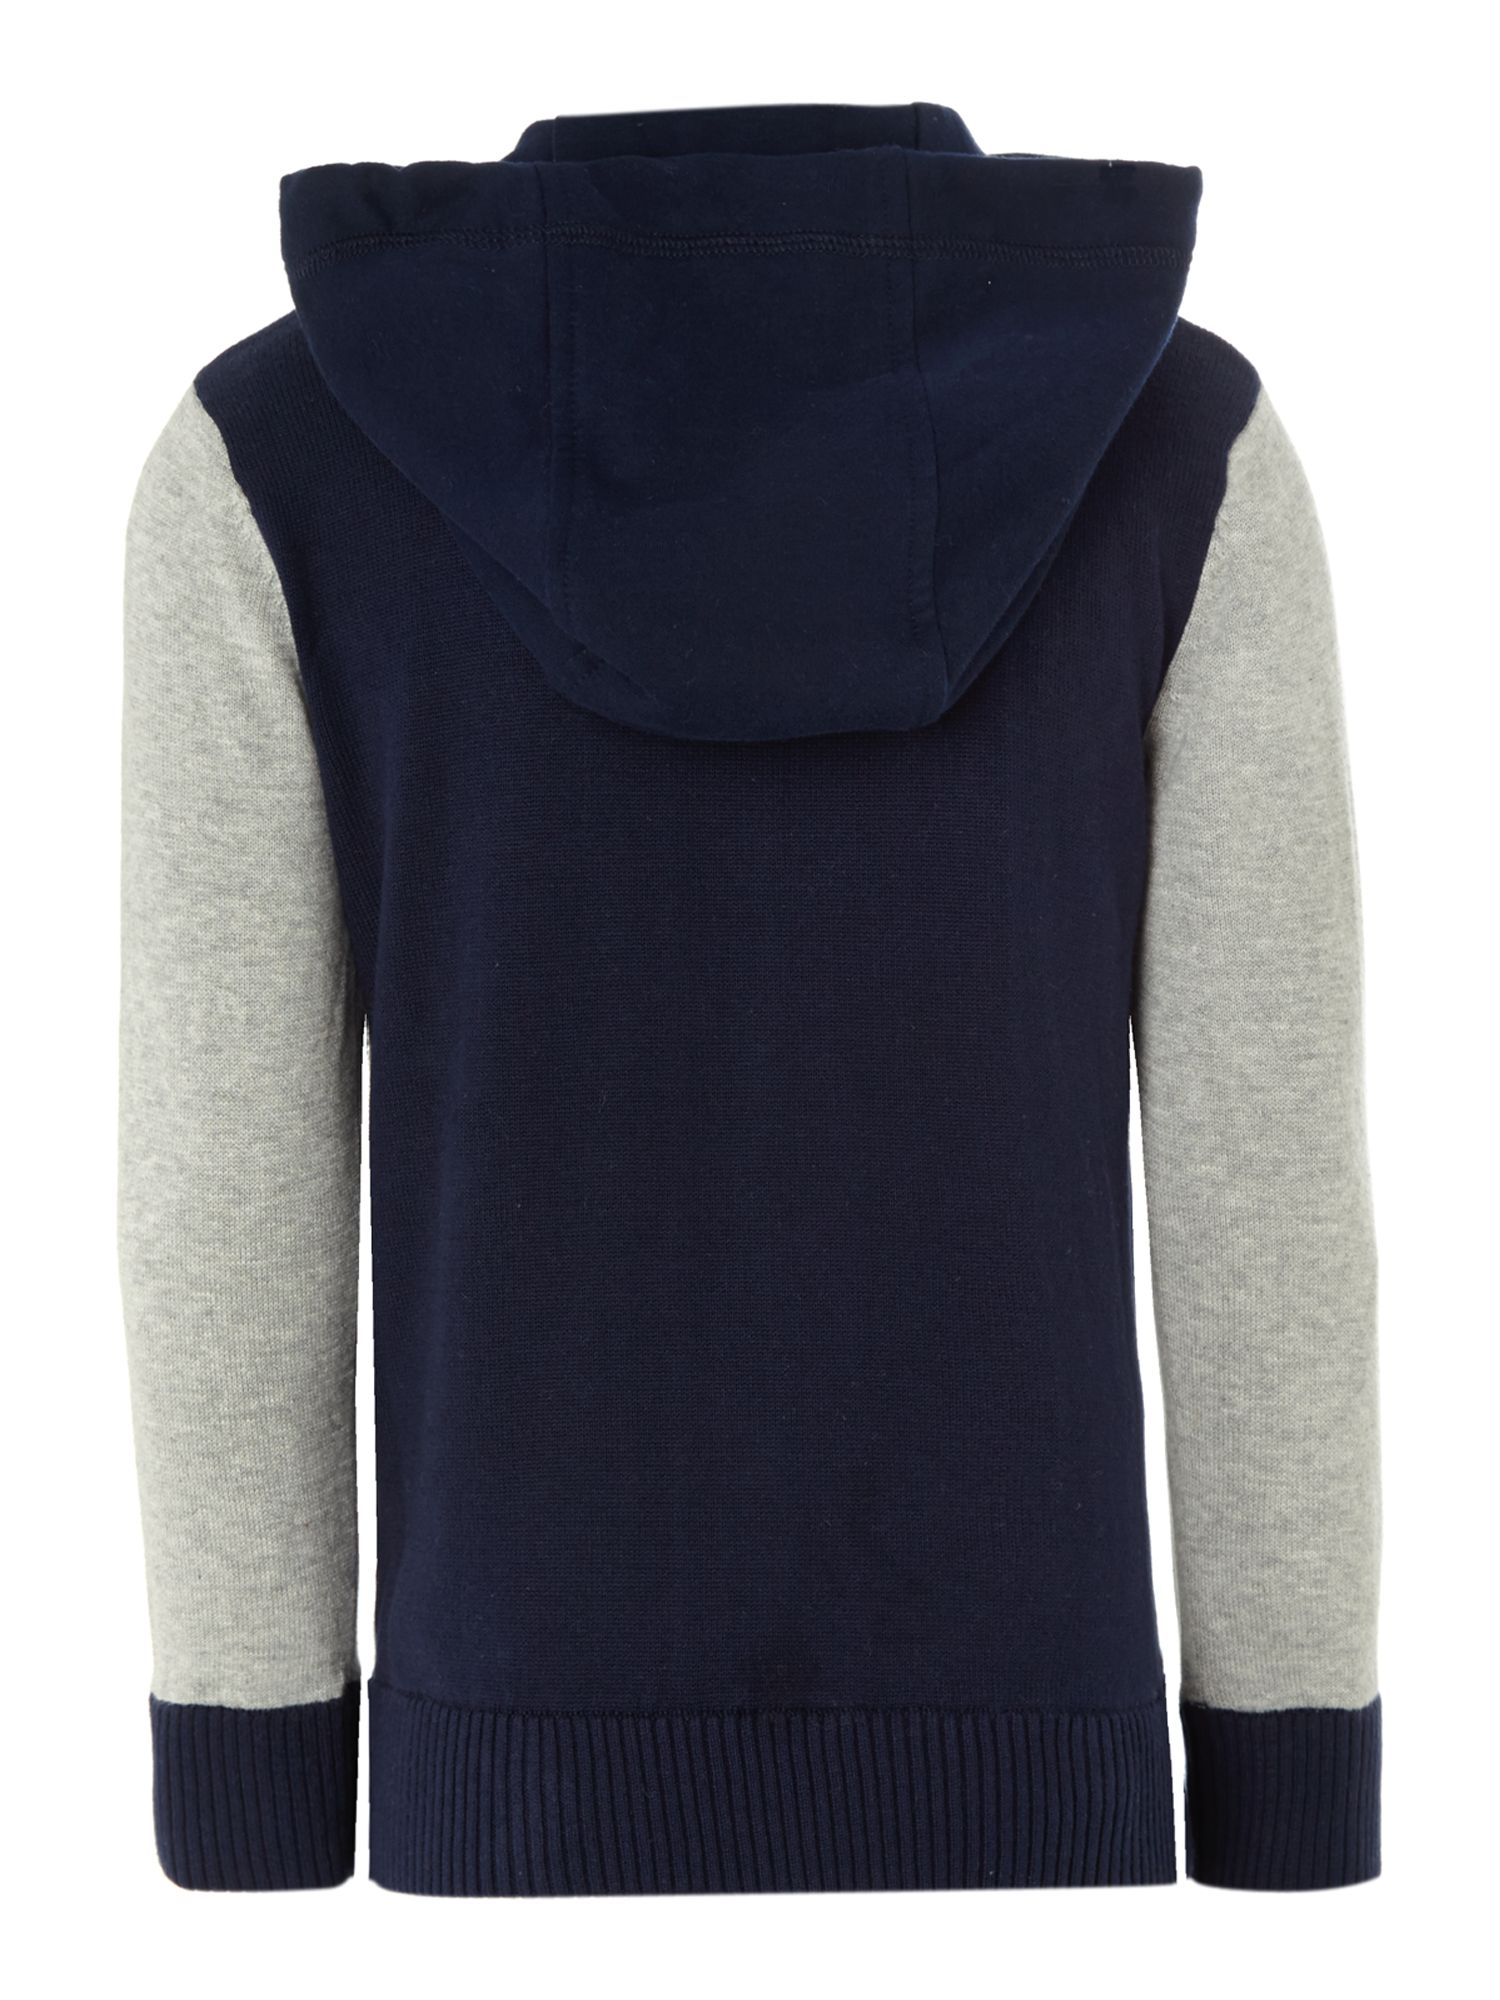 Boy`s knitted hooded top